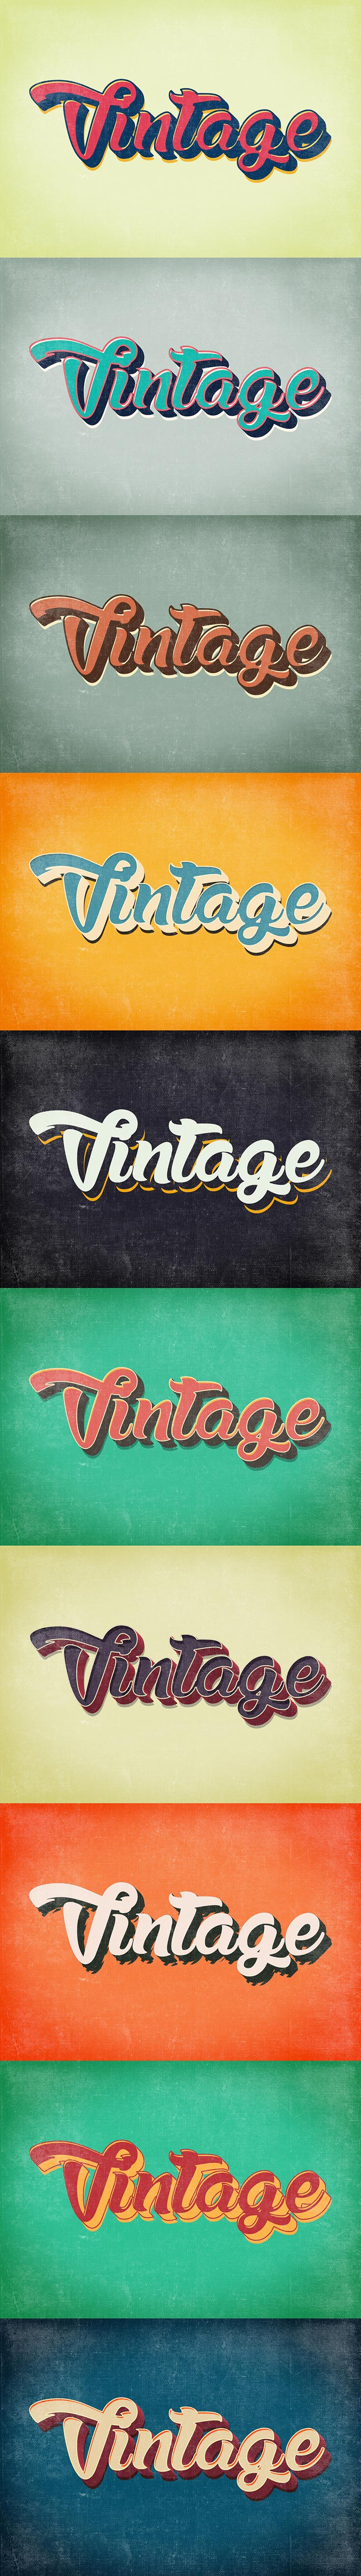 10 Free Vintage & Retro Text Styles for your creative projects. Turn your text/artwork, design into vintage and retro look just by one click!